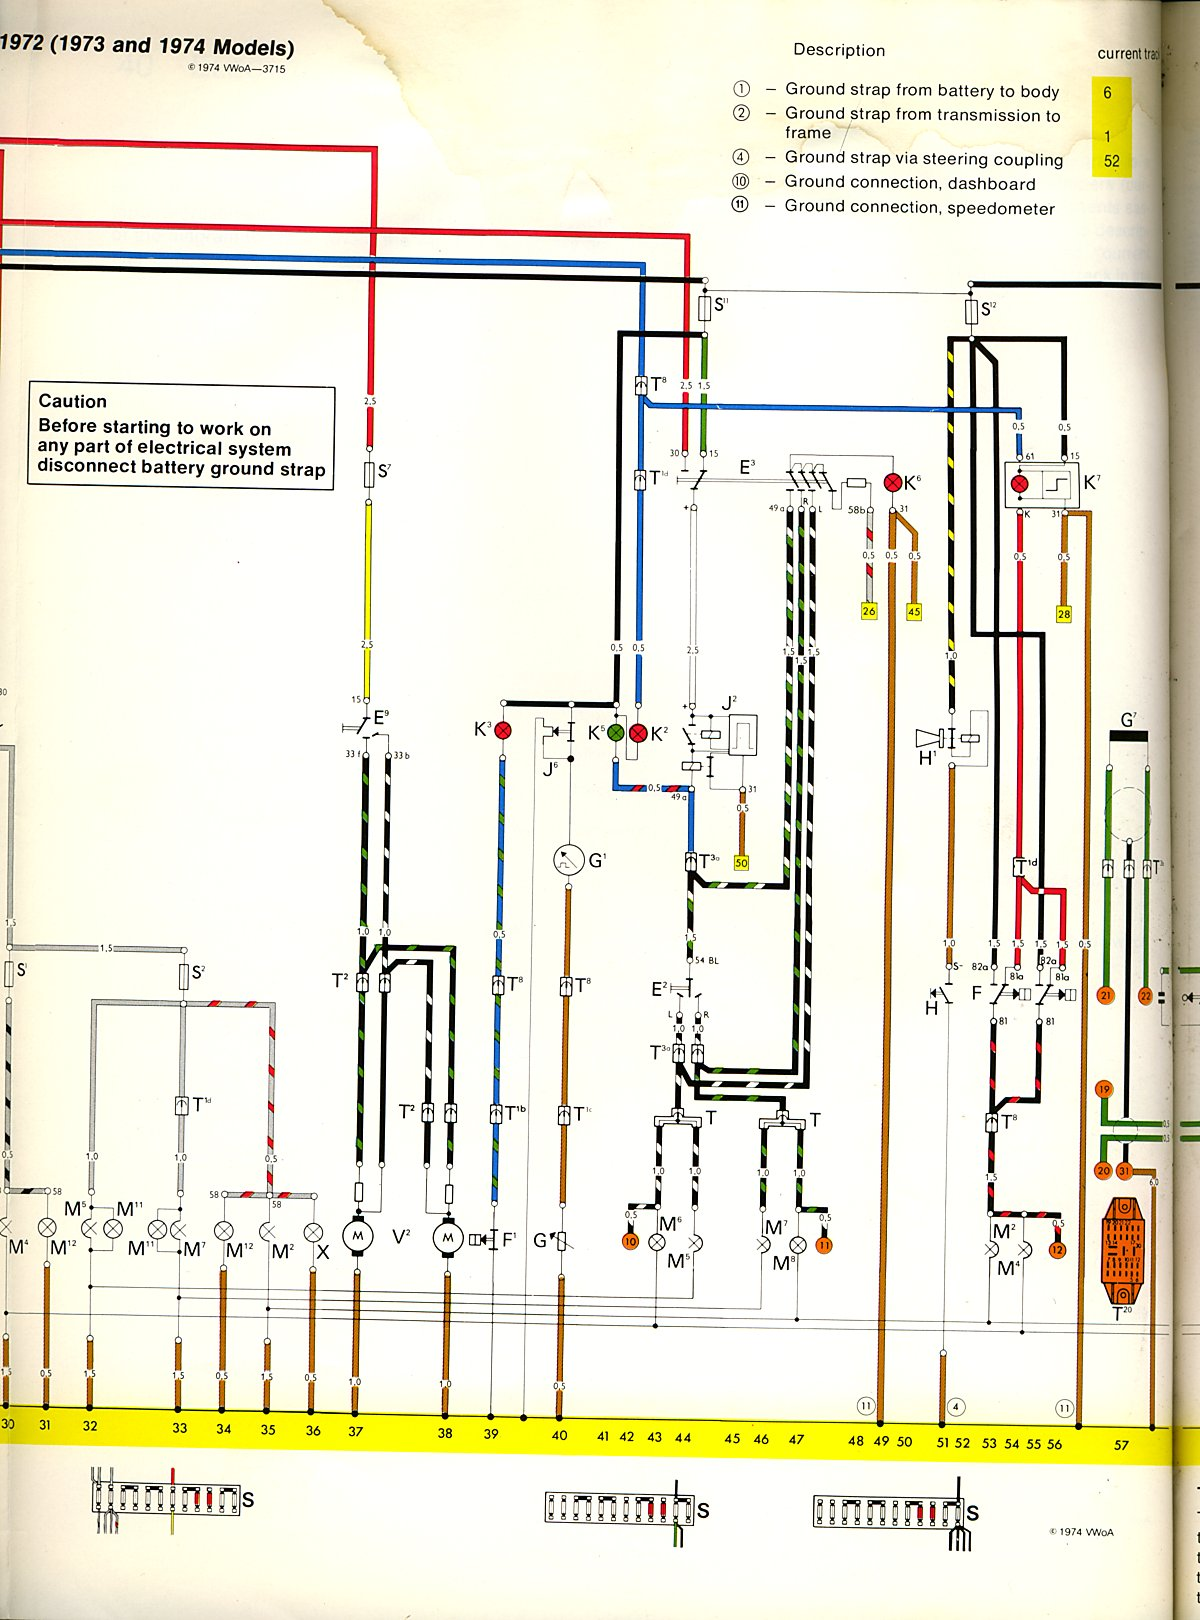 i'm looking for a color-coded wiring diagram for a 1973 vw ... 1973 chevrolet wiring diagram